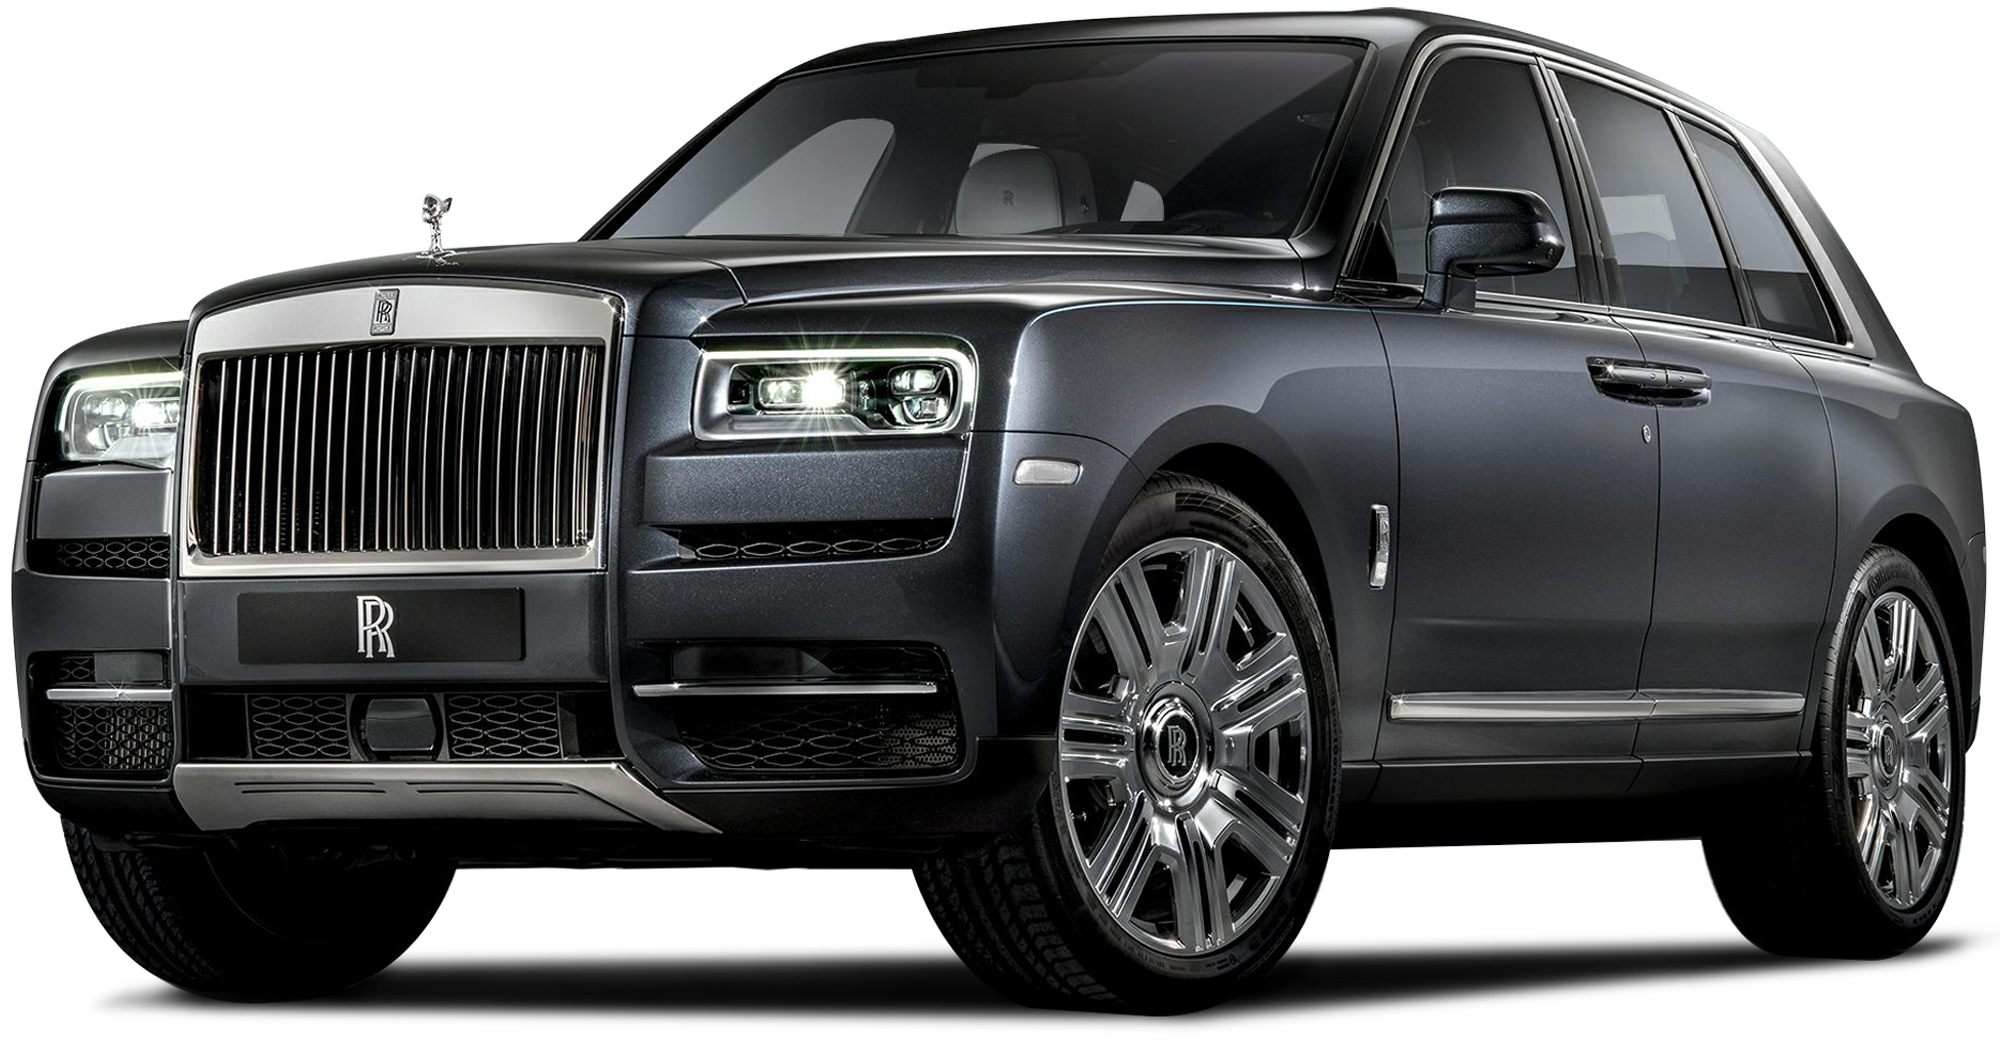 2019 Rolls Royce Cullinan: Design, Powertrain, Release >> 2019 Rolls Royce Cullinan Incentives Specials Offers In Dallas Tx